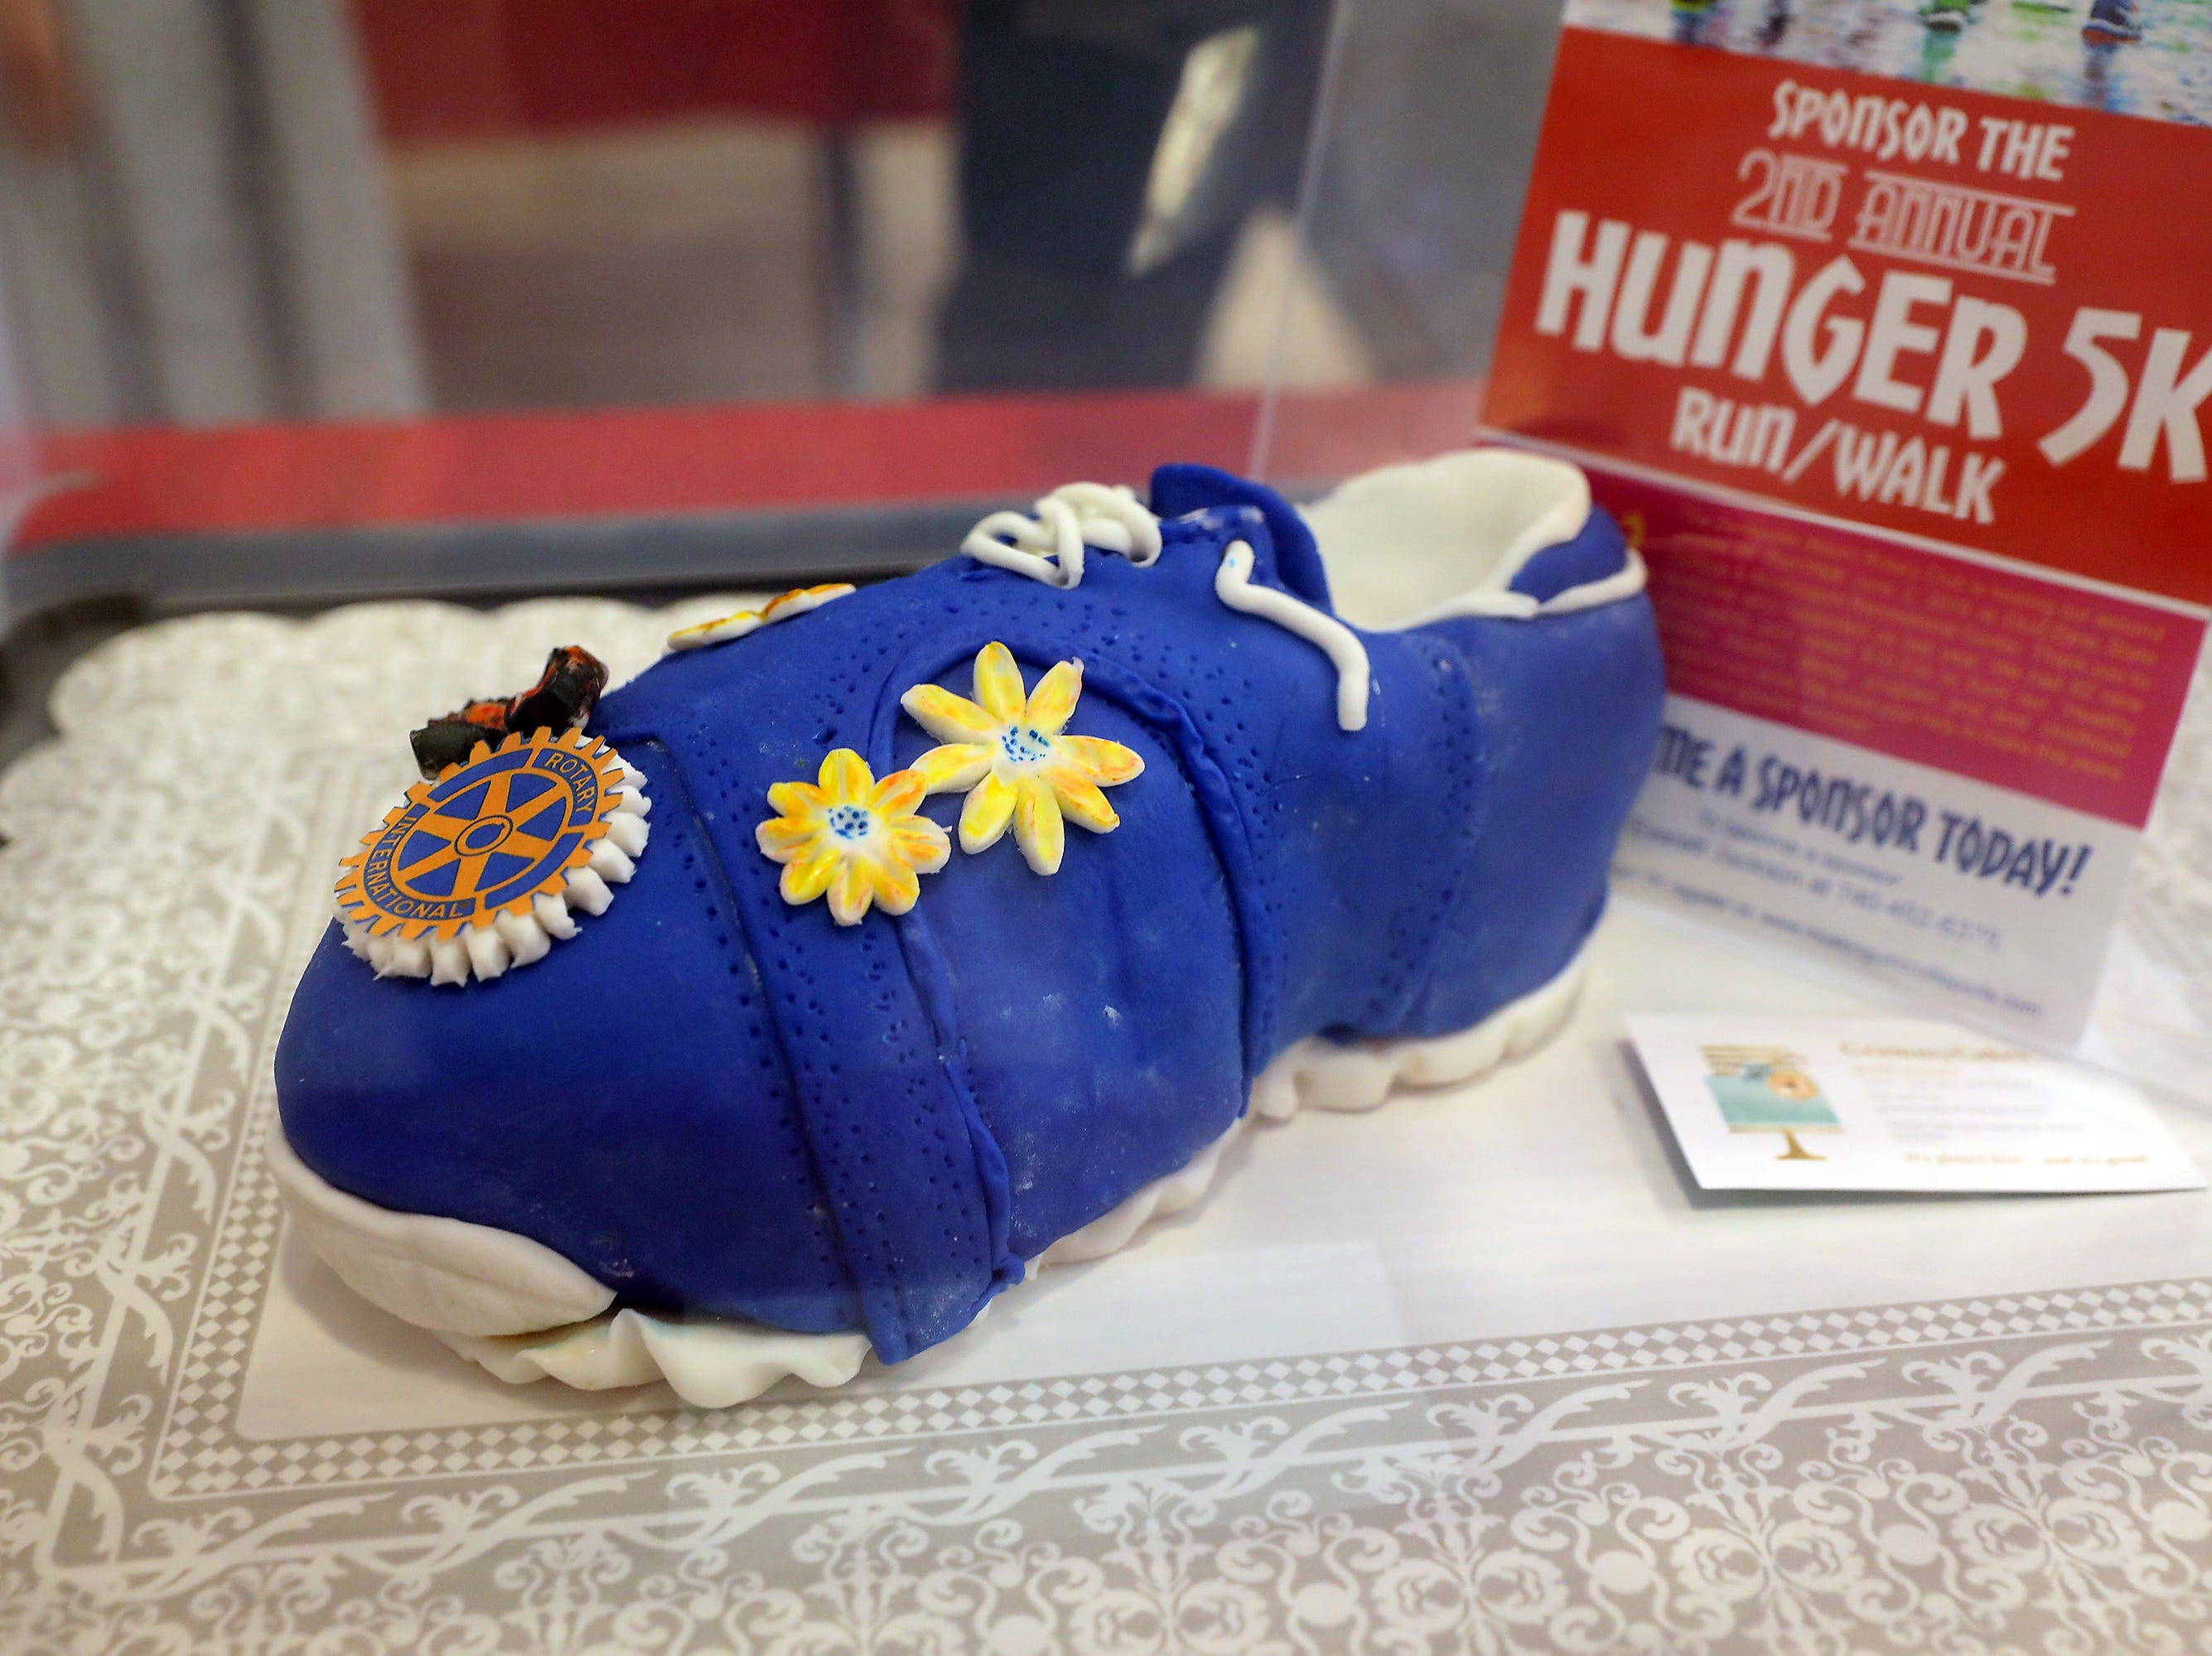 3:30 P.M. Friday cake 362 Noon Rotary Club - 4 entries to Rotary Hunger 5K June 2; $120